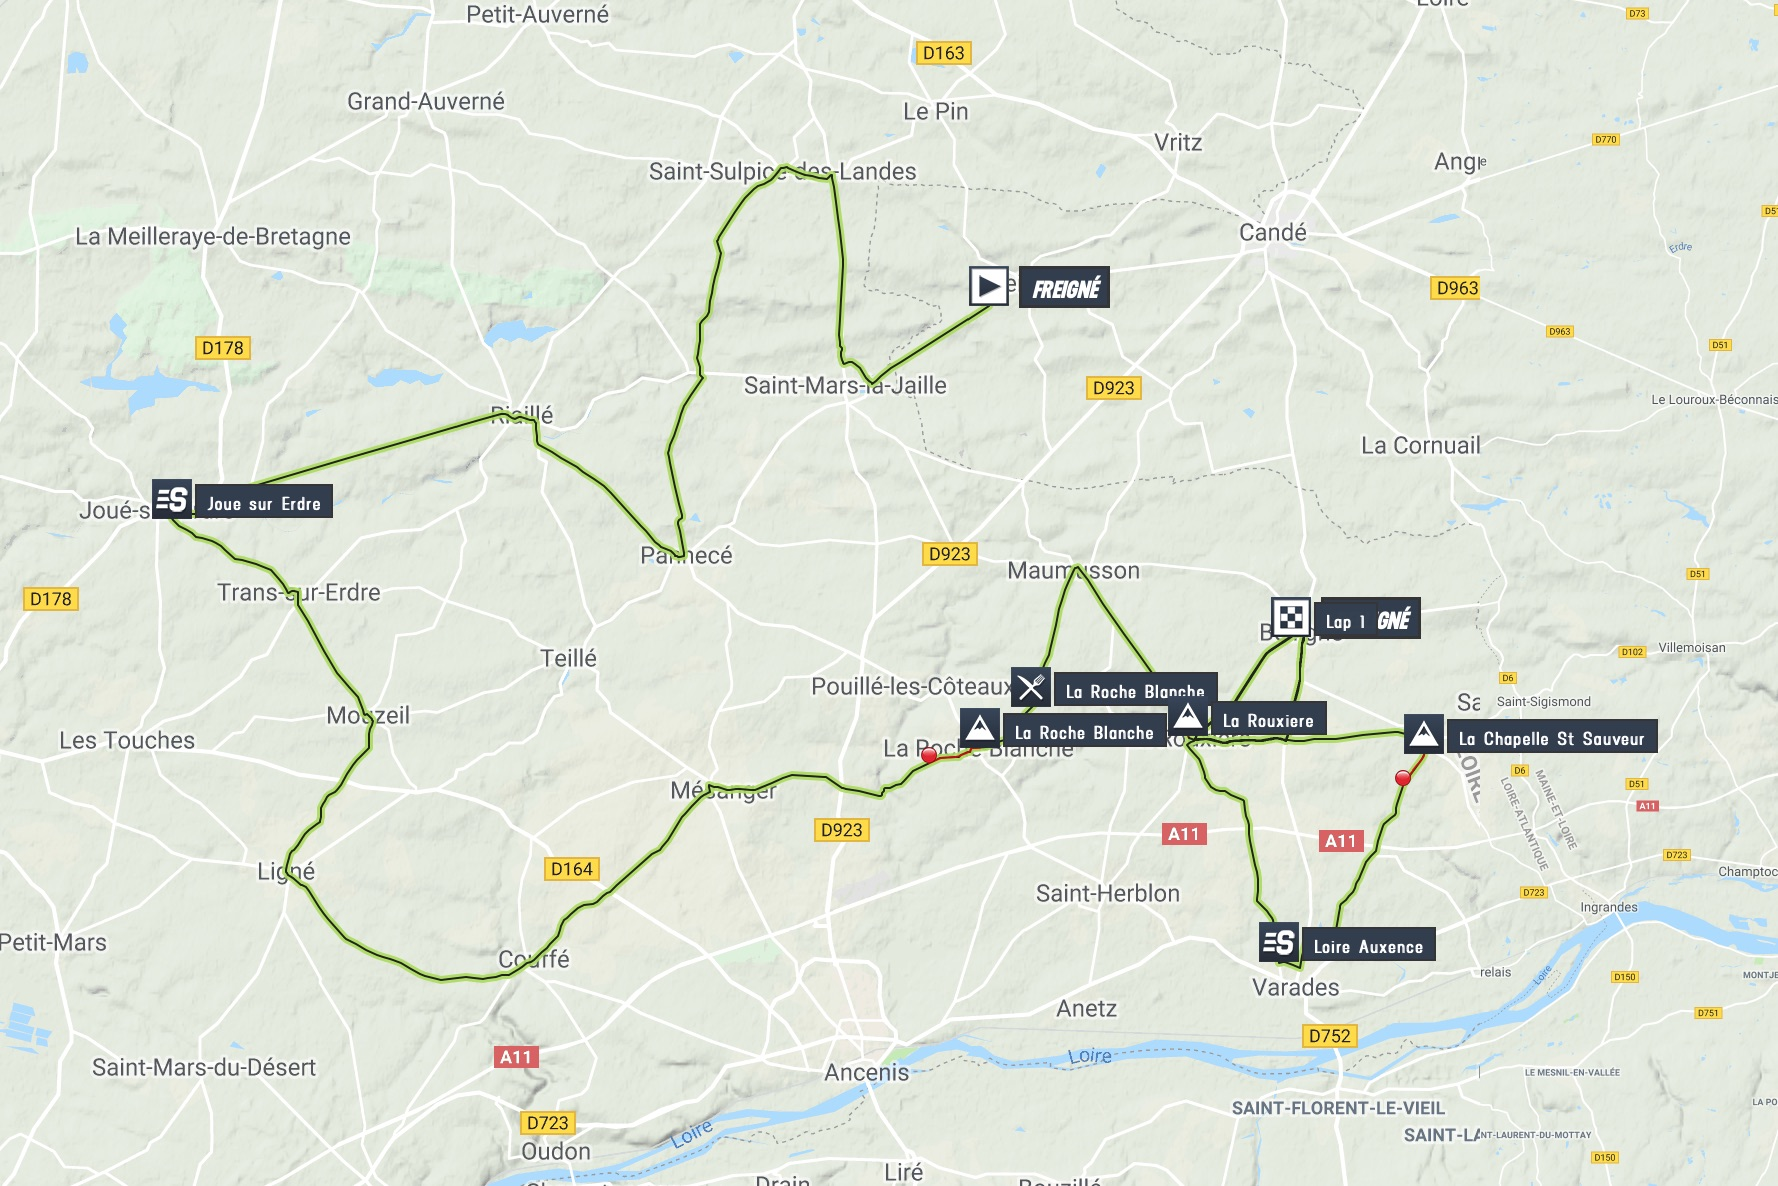 https://www.procyclingstats.com/images/profiles/ap/de/circuit-sarthe-2019-stage-2-map-b95ccbc447.jpg